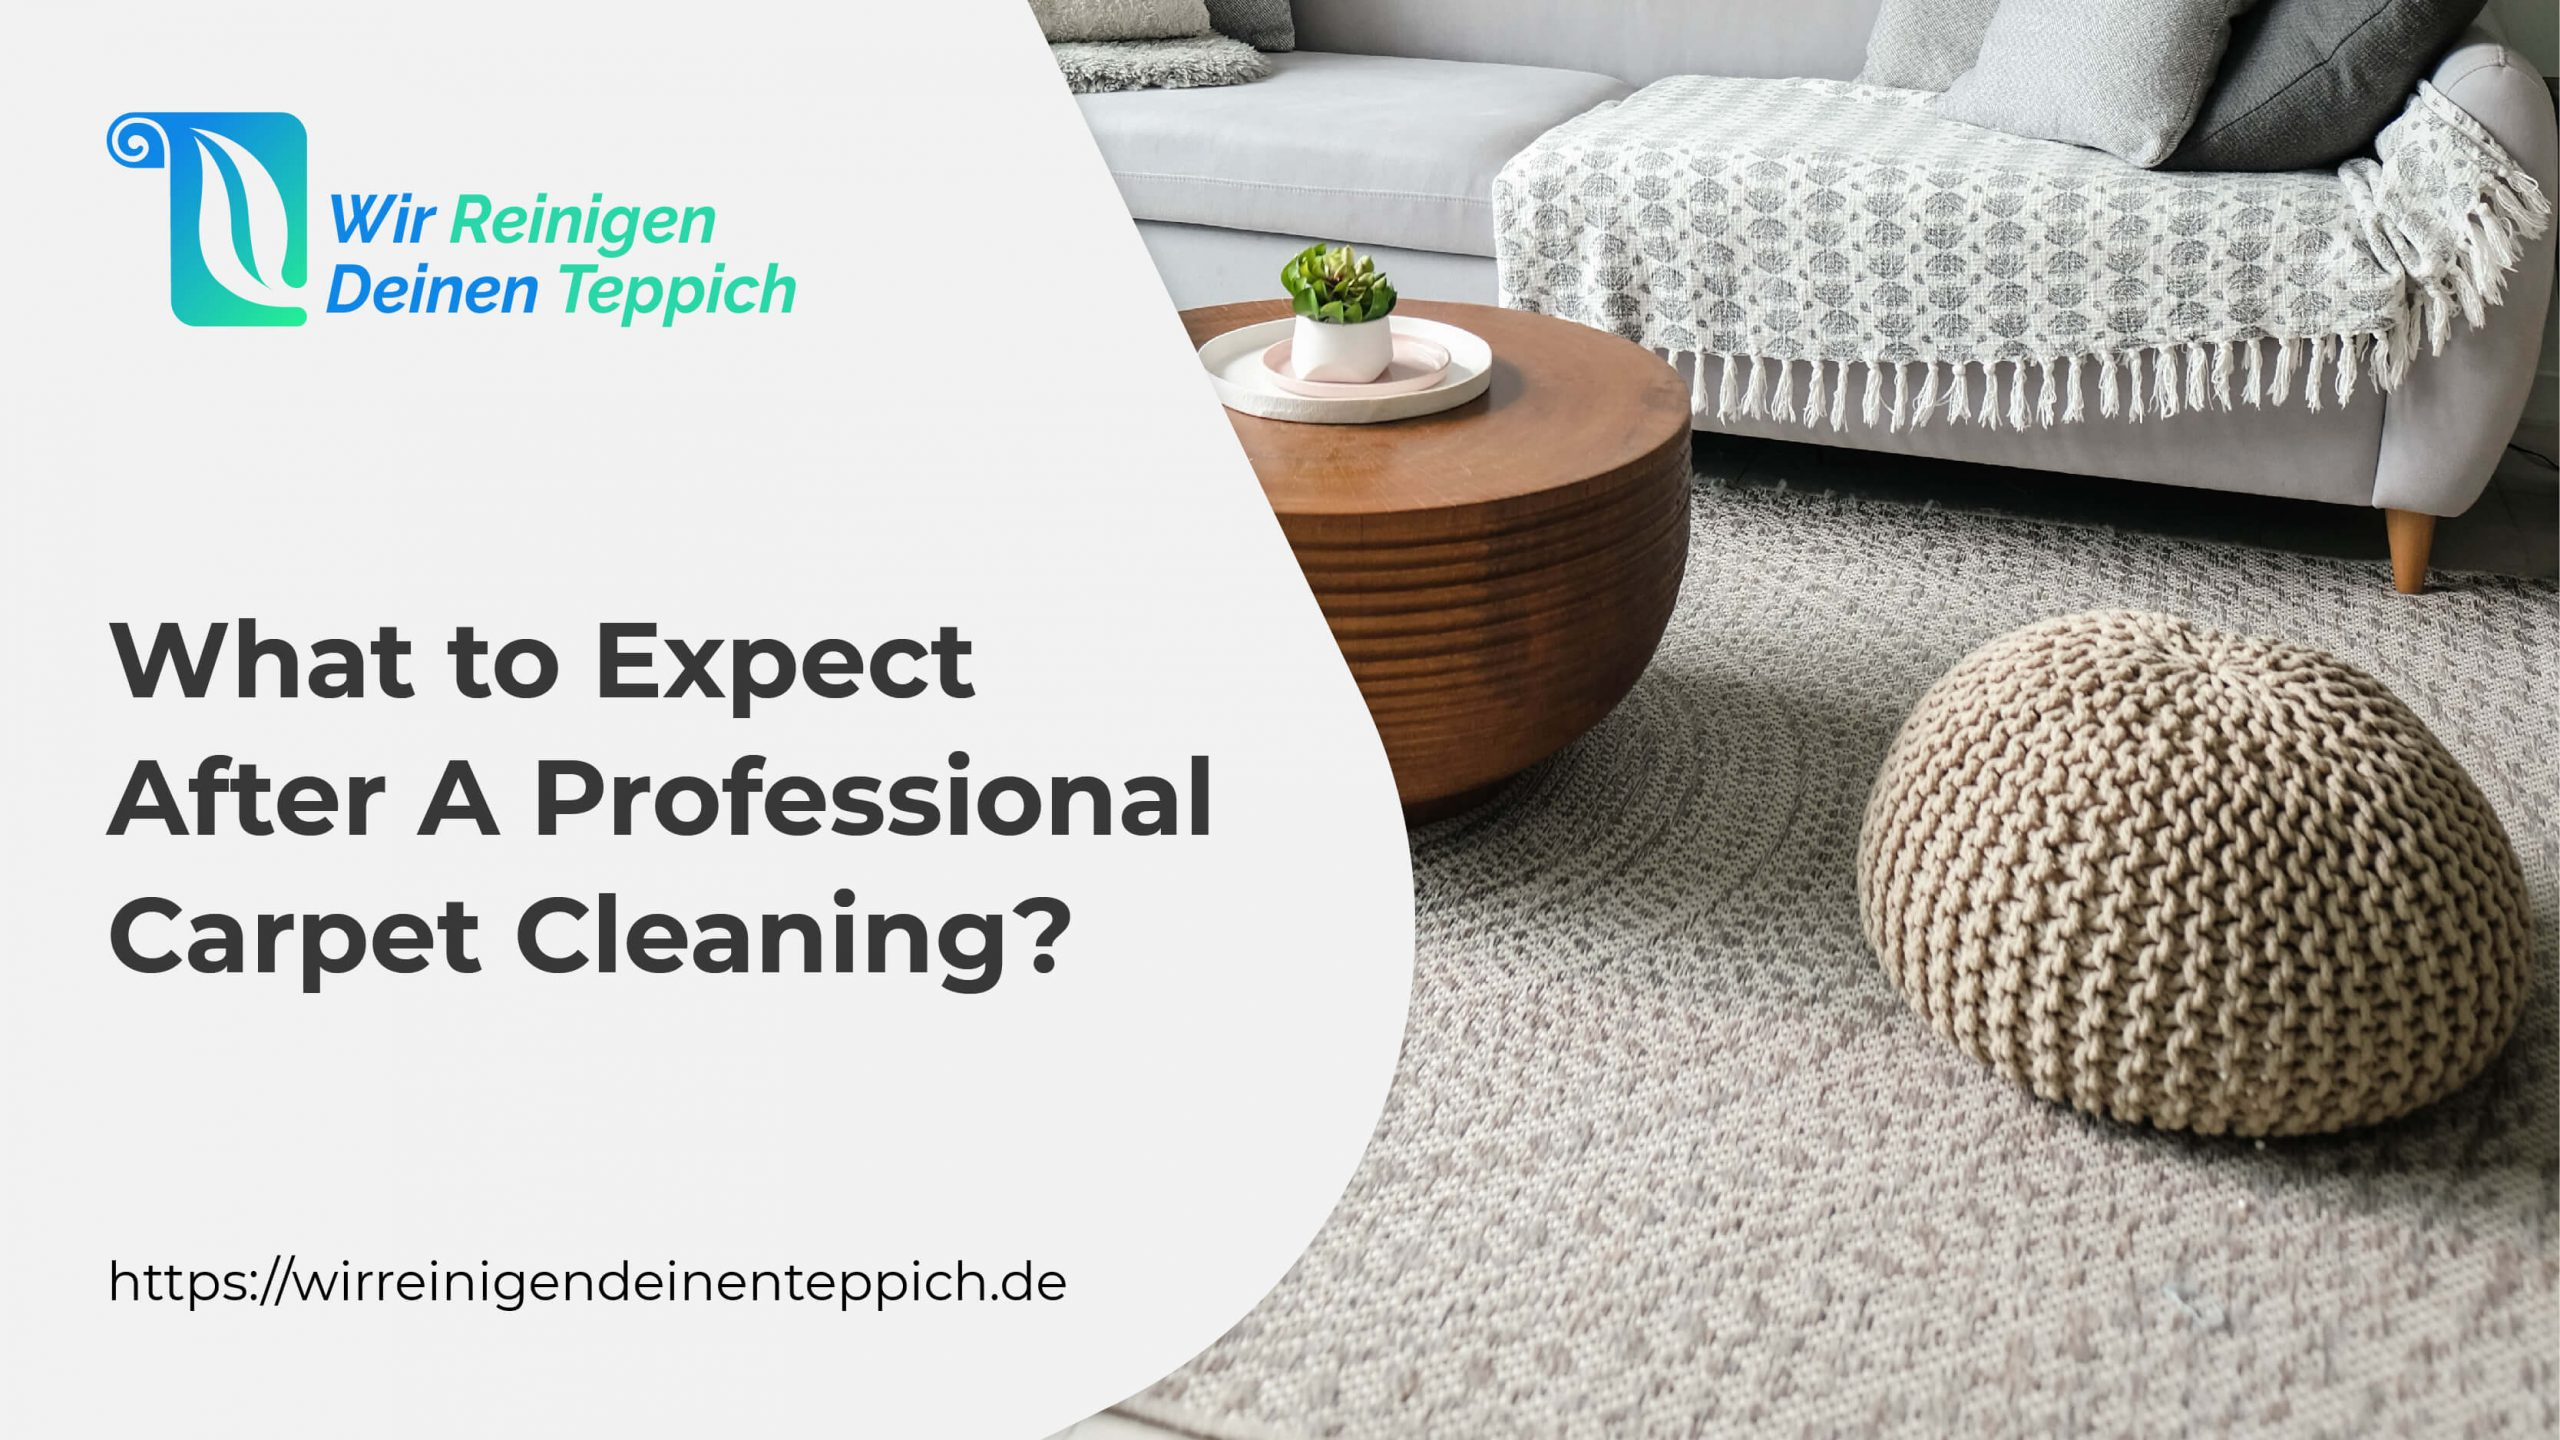 What to Expect After a Professional Carpet Cleaning